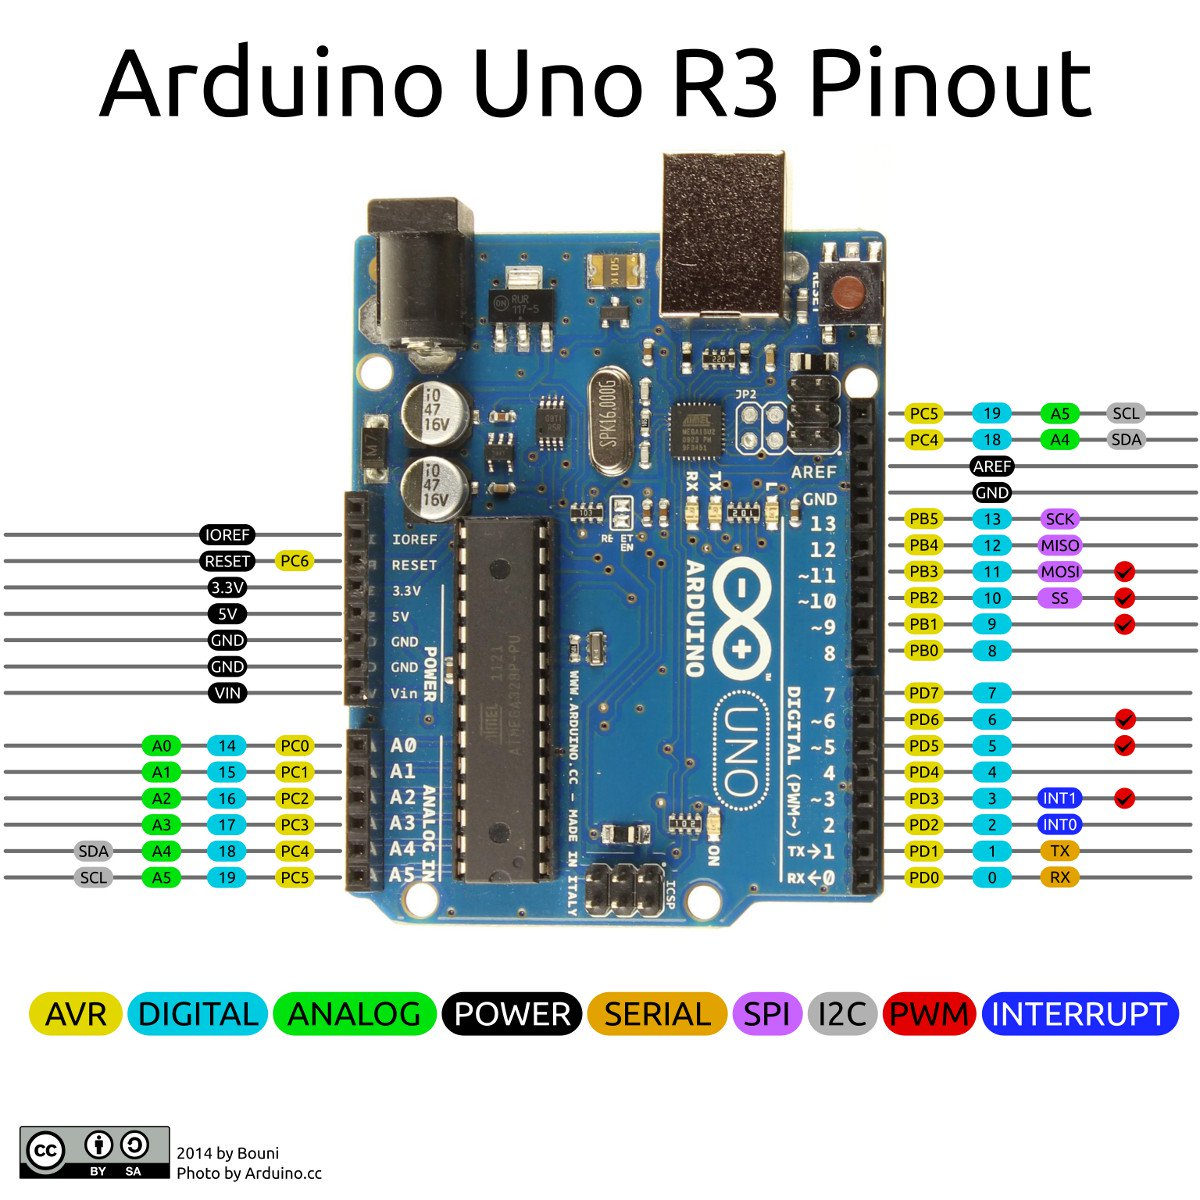 from the arduino pinout below we knew that pwm is only available on pin d3,  d4, d5 and d9, d10, d11  so the only pins we could use for the servos are  d9 and